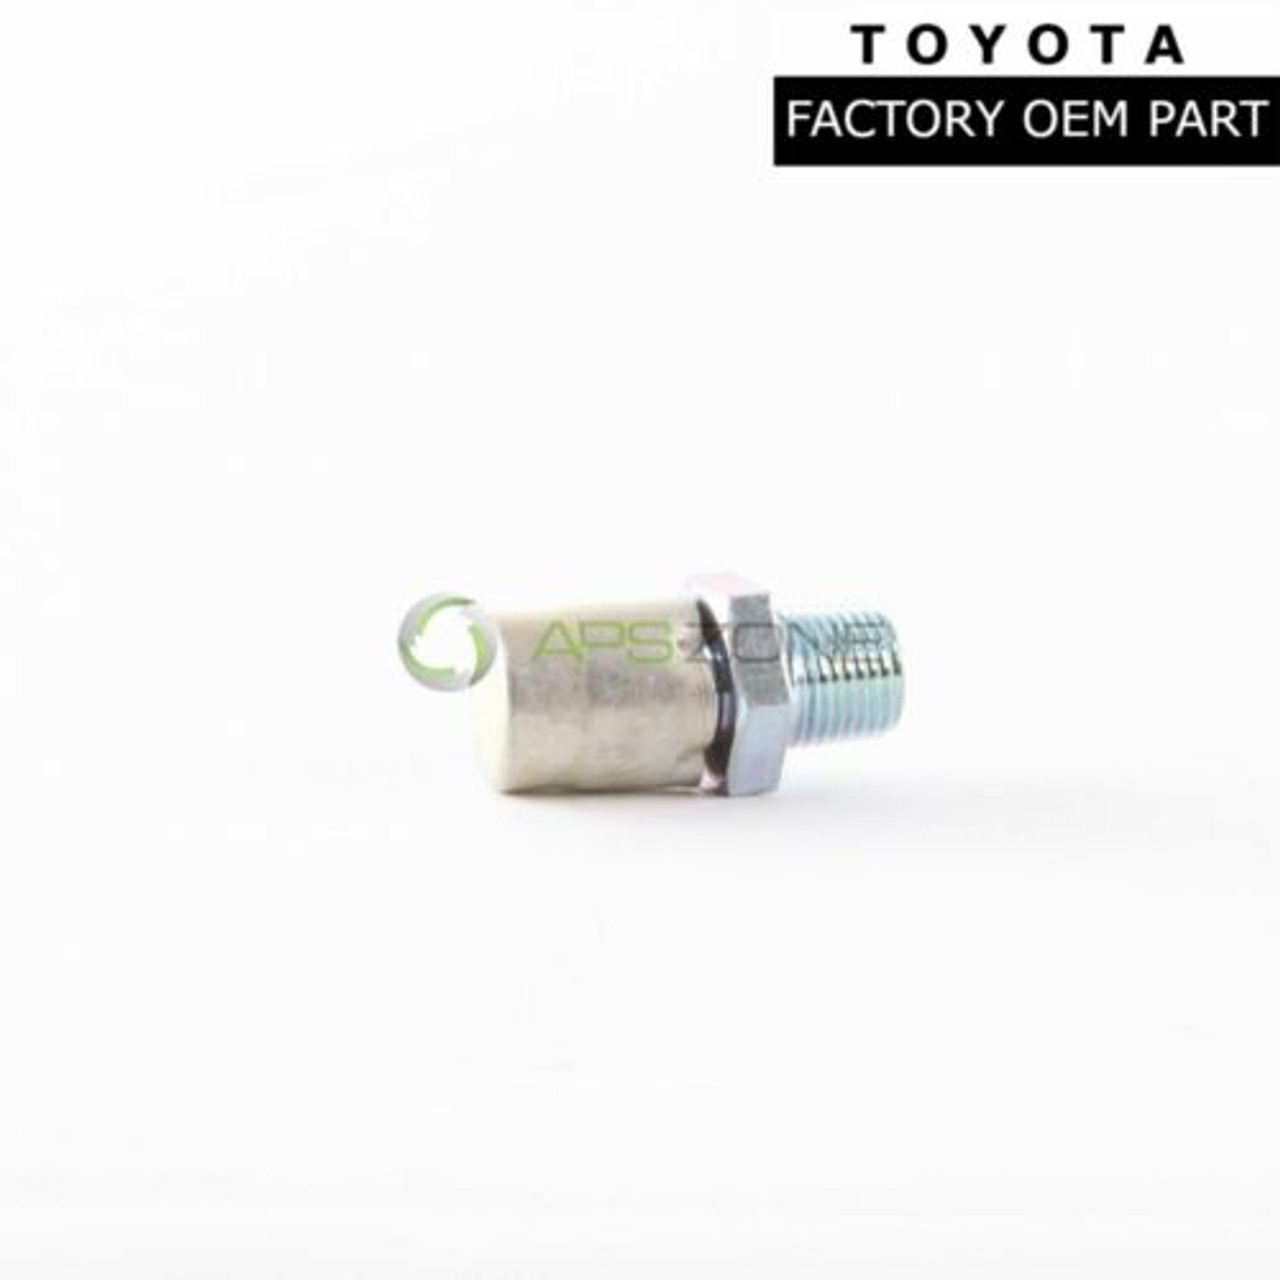 NEW GENUINE TOYOTA  PLUG BREATHER FOR REAR AXLE HOUSING 90930-03031